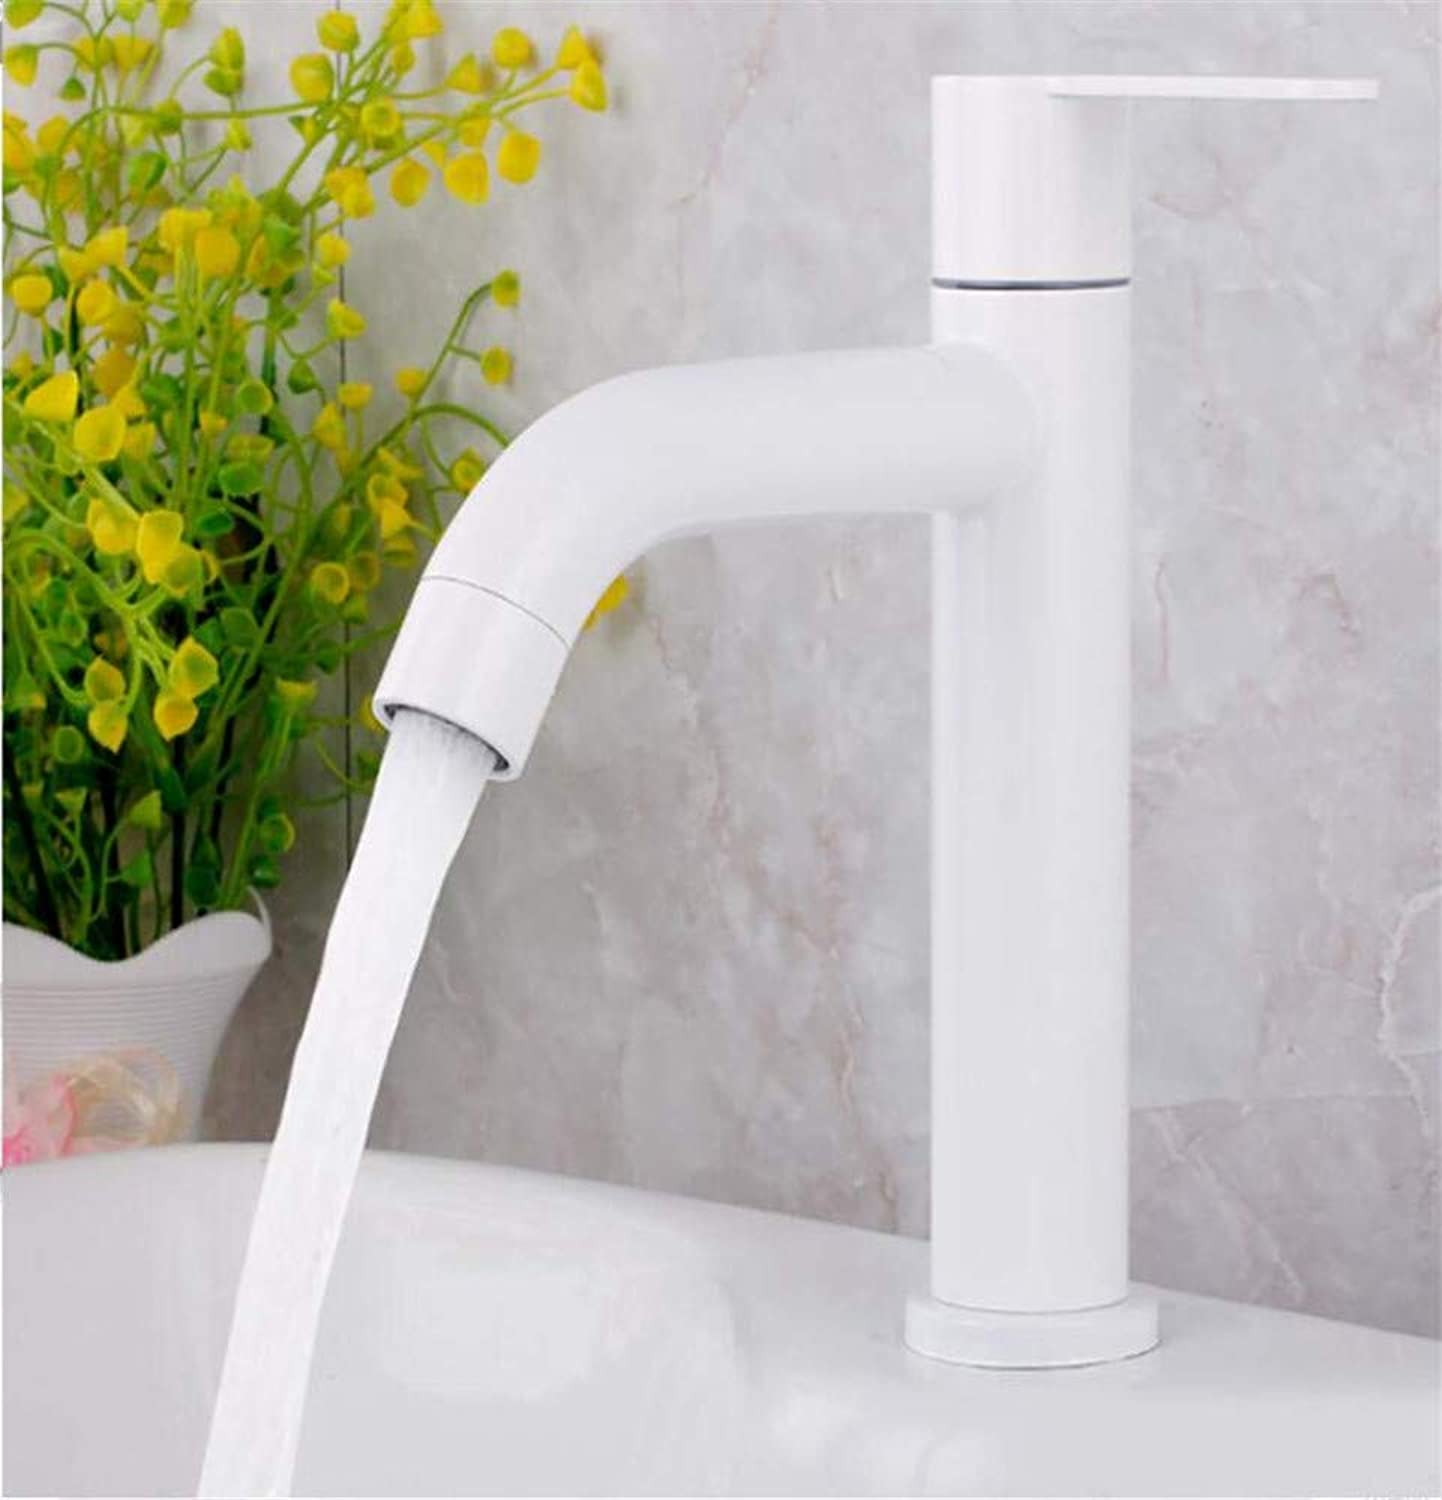 360° redating Faucet Retro Faucetbasin Faucet European Style 304 Stainless Steel